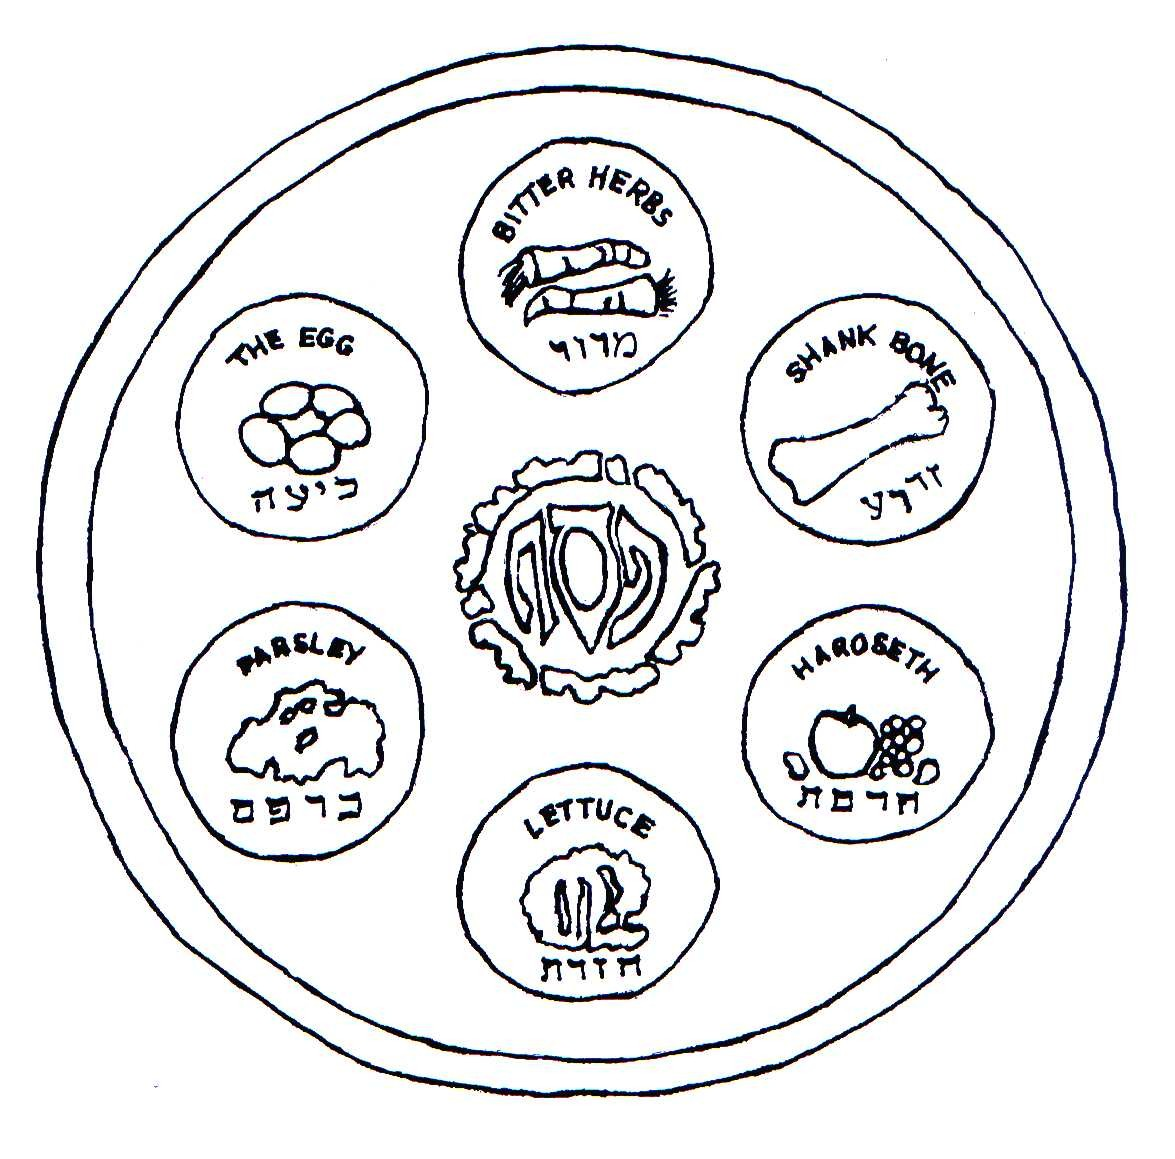 Seder plate clipart 3 » Clipart Station.